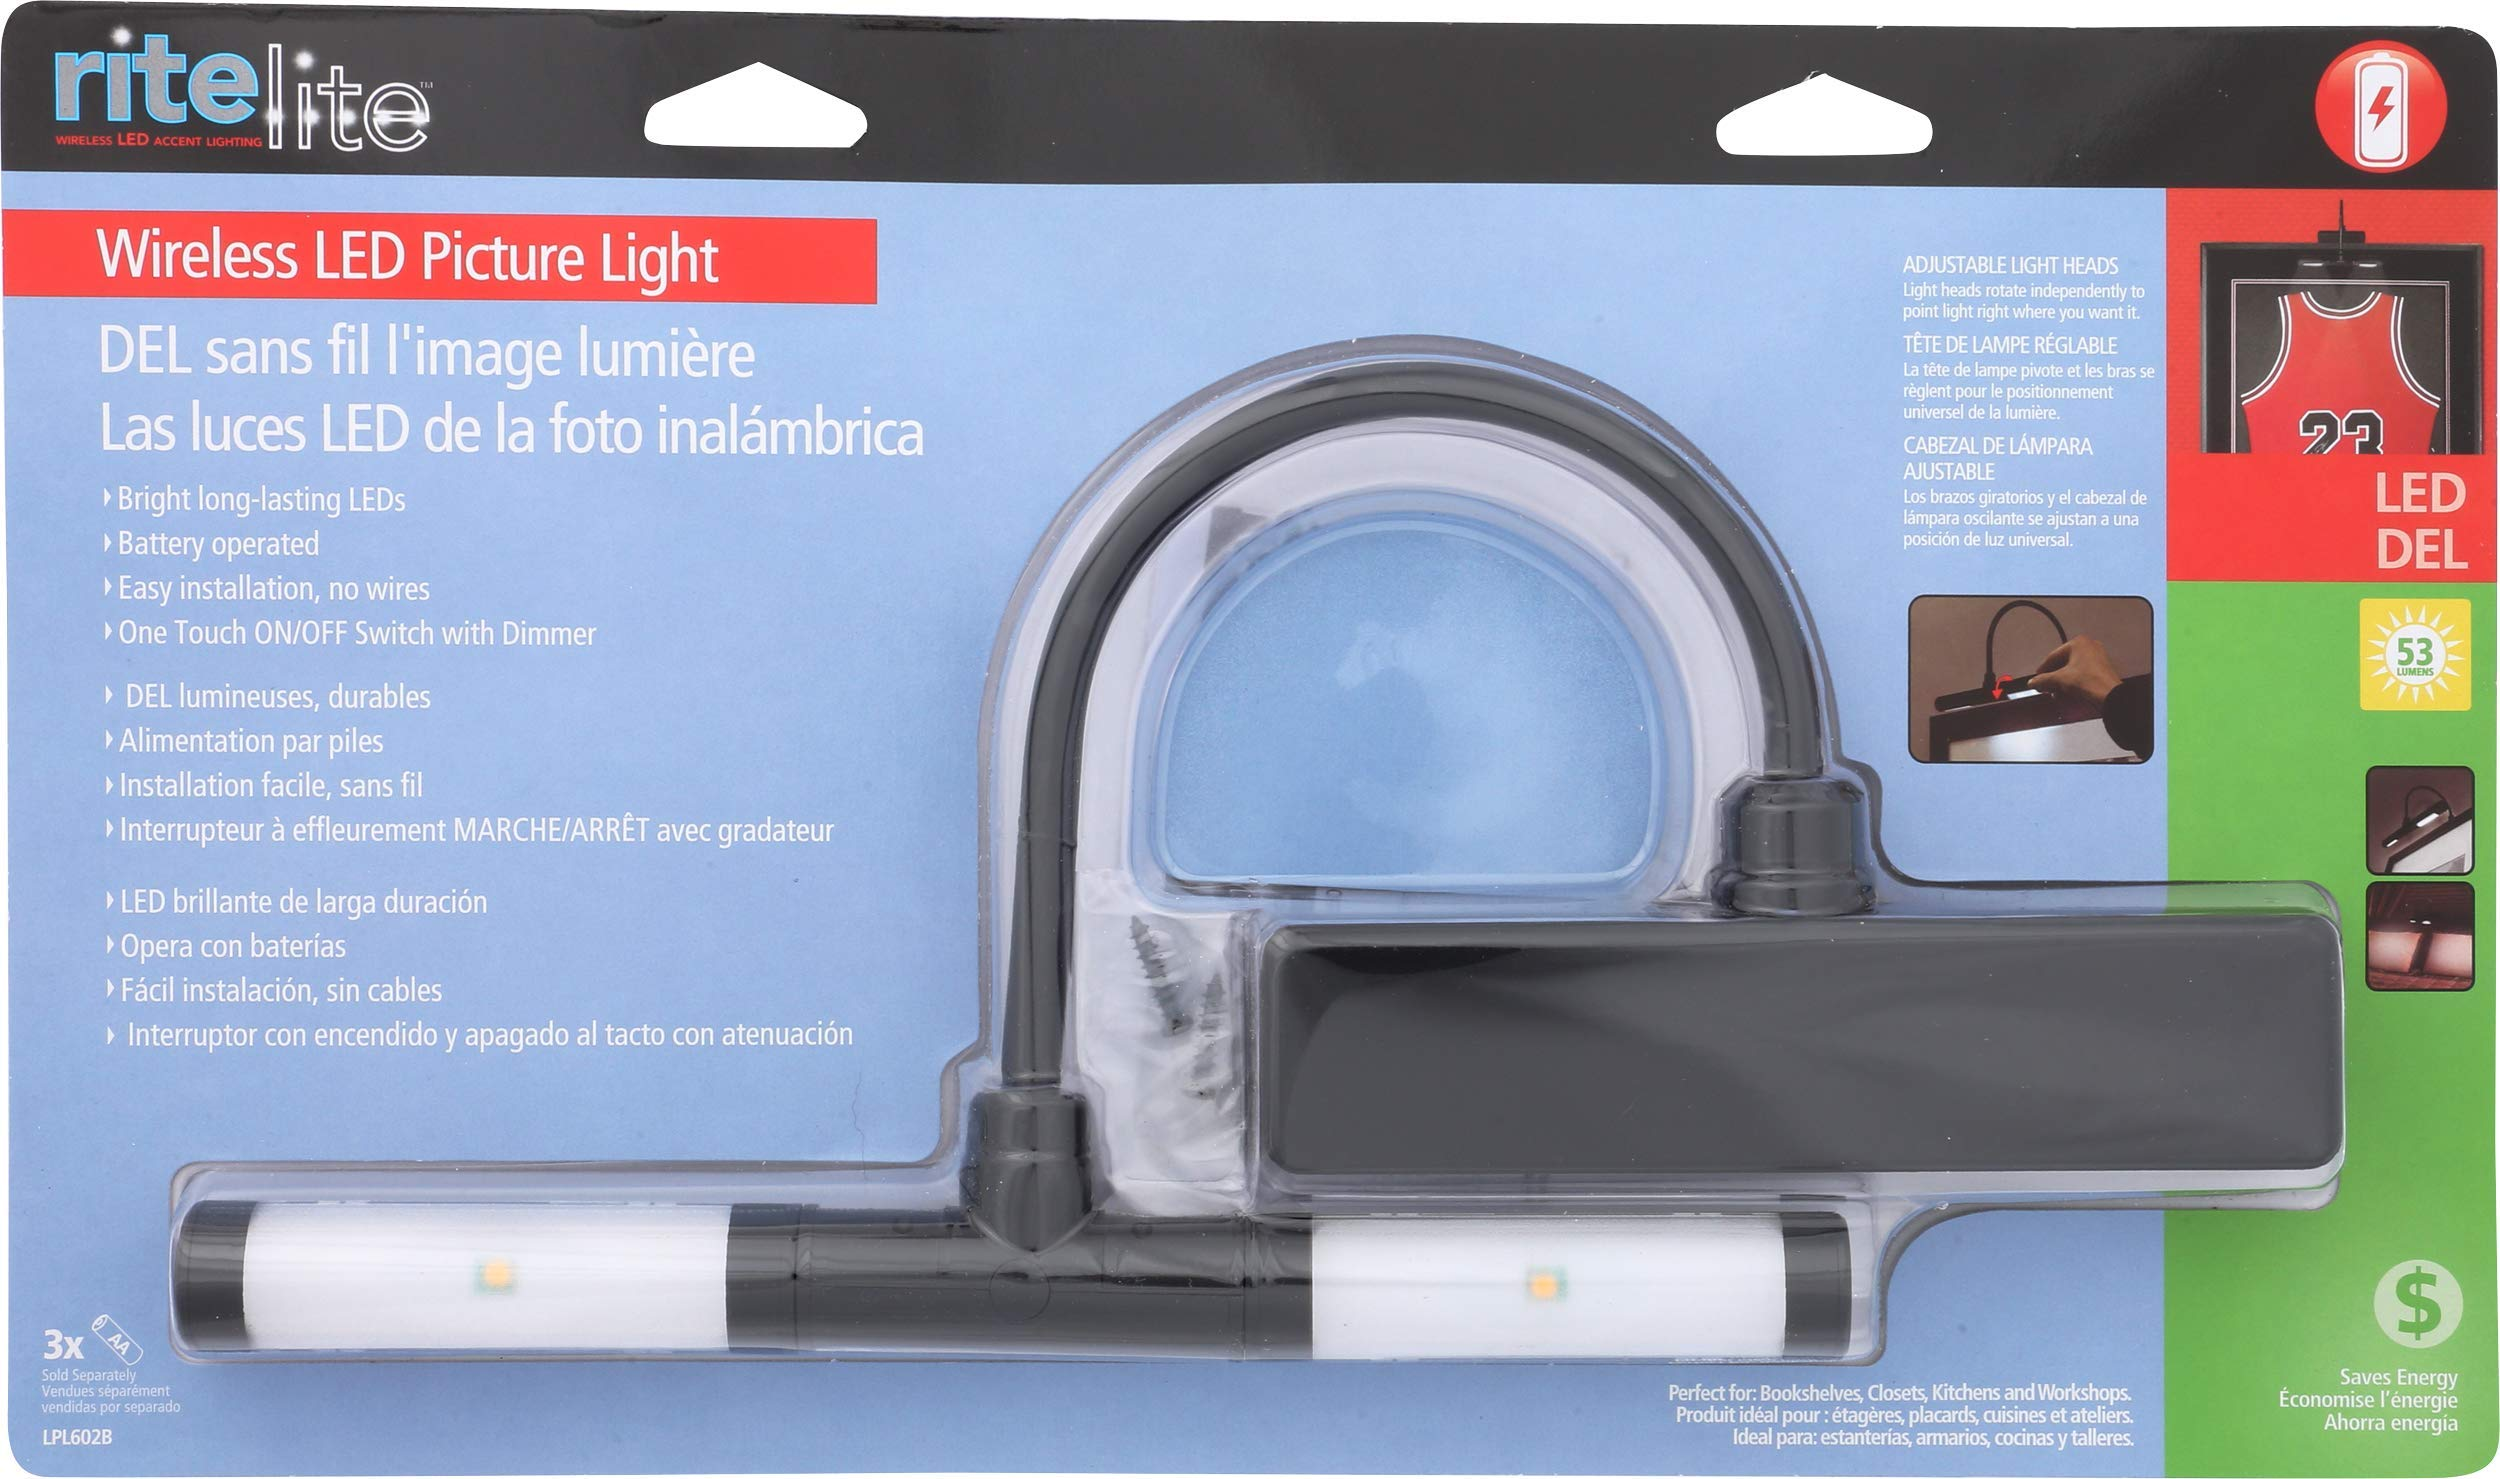 Rite Lite LPL602B battery operated Super Bright LED Picture Light by Rite Lite (Image #8)